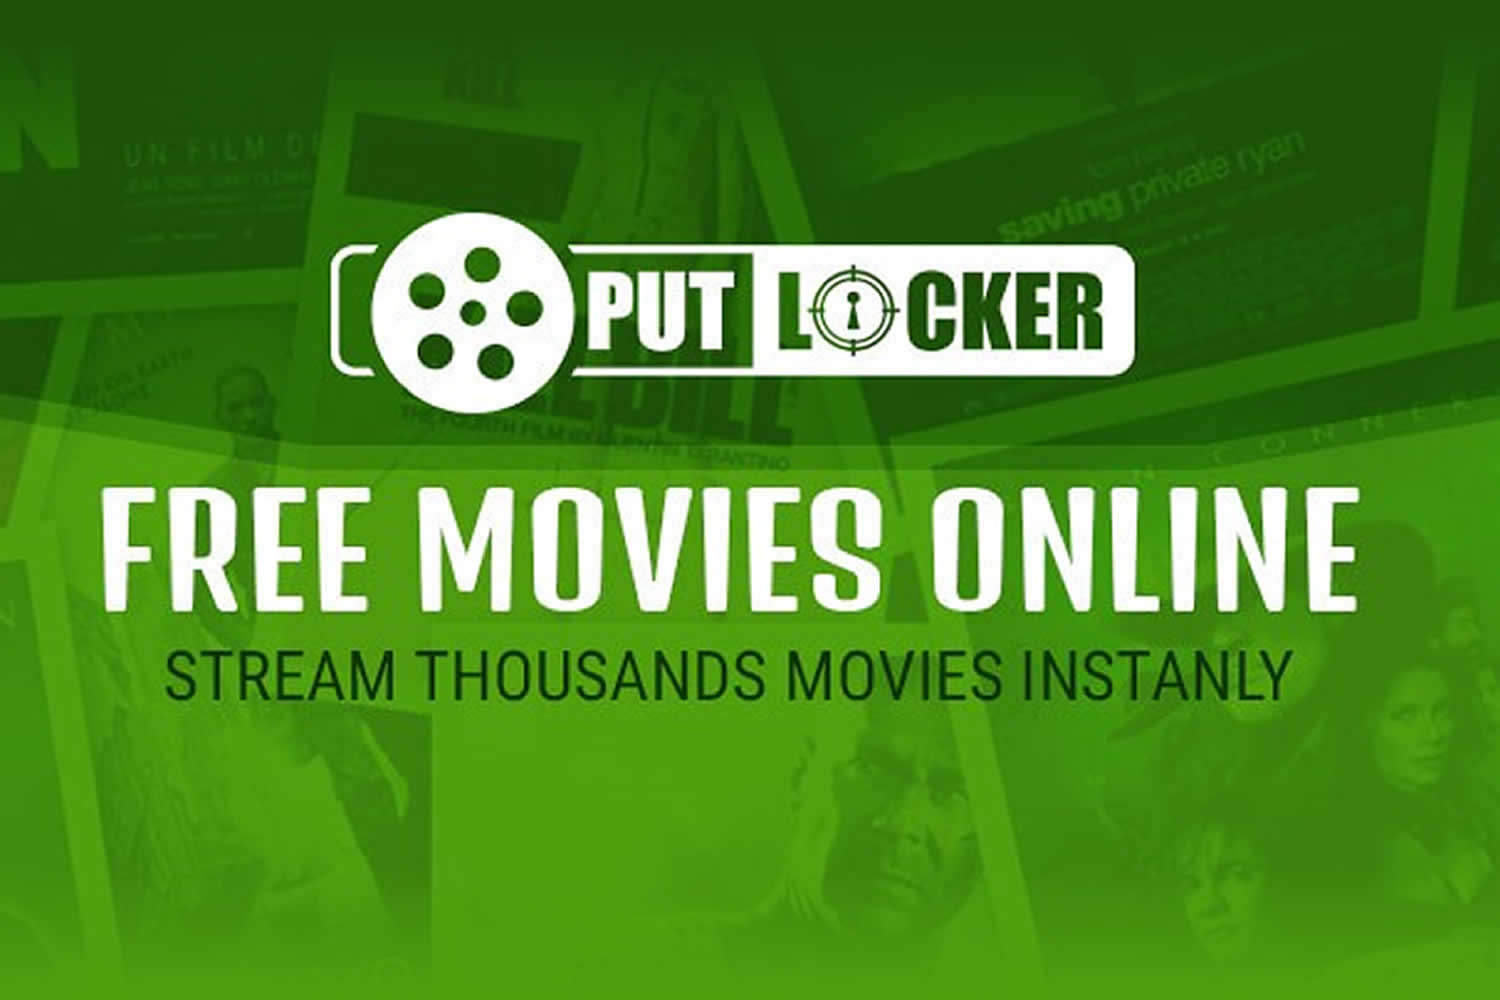 Watch Die tolle Lola Putlocker Movies